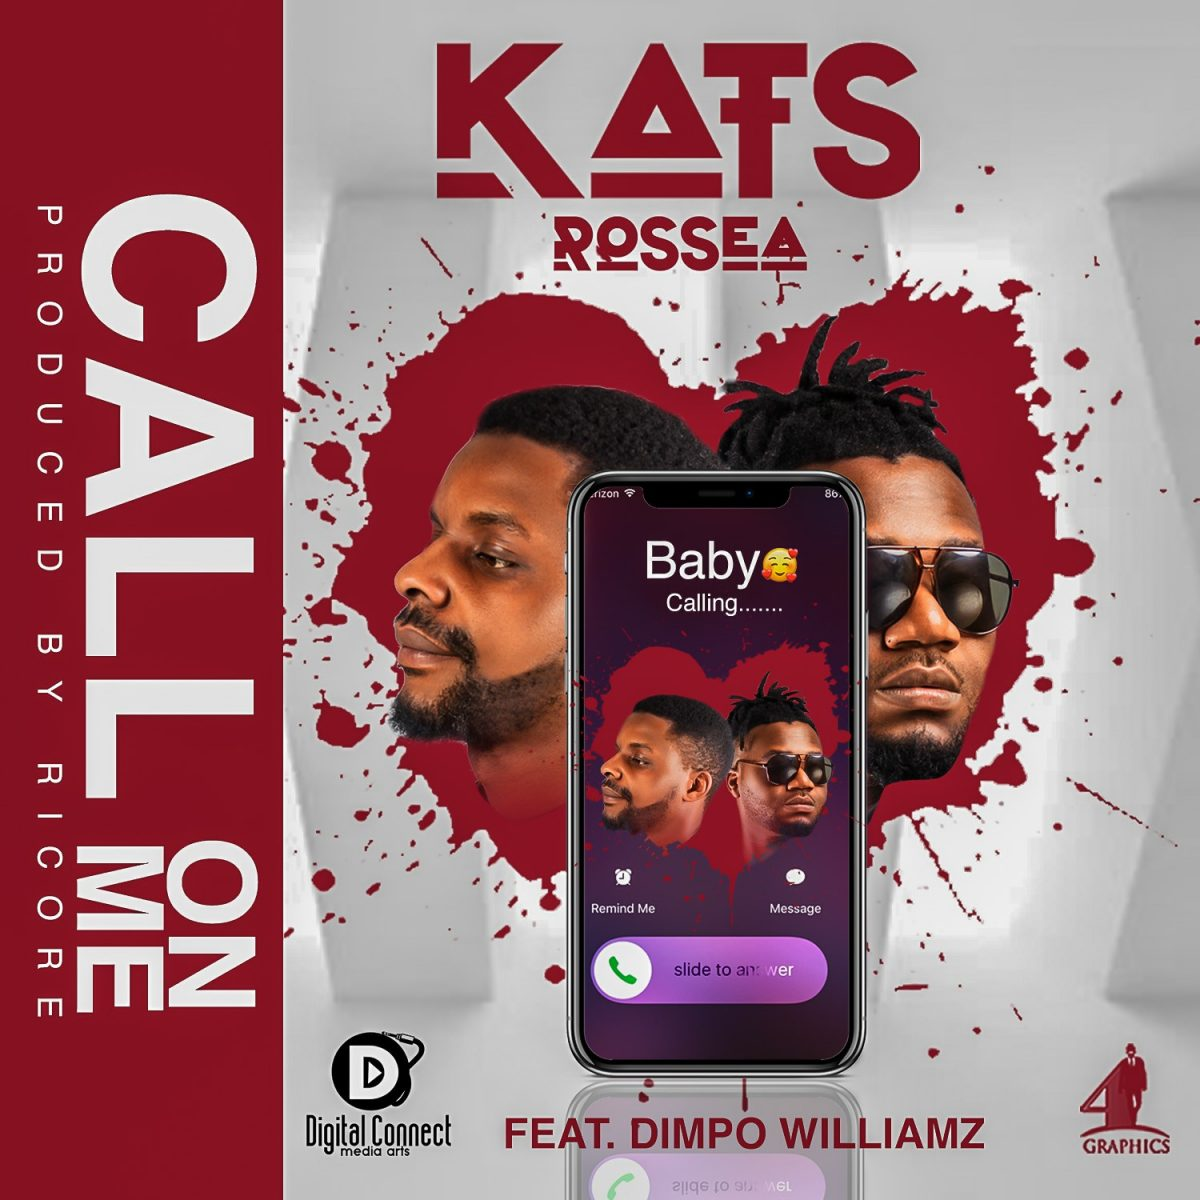 Kats Rossea ft. Dimpo Williams - Call On Me